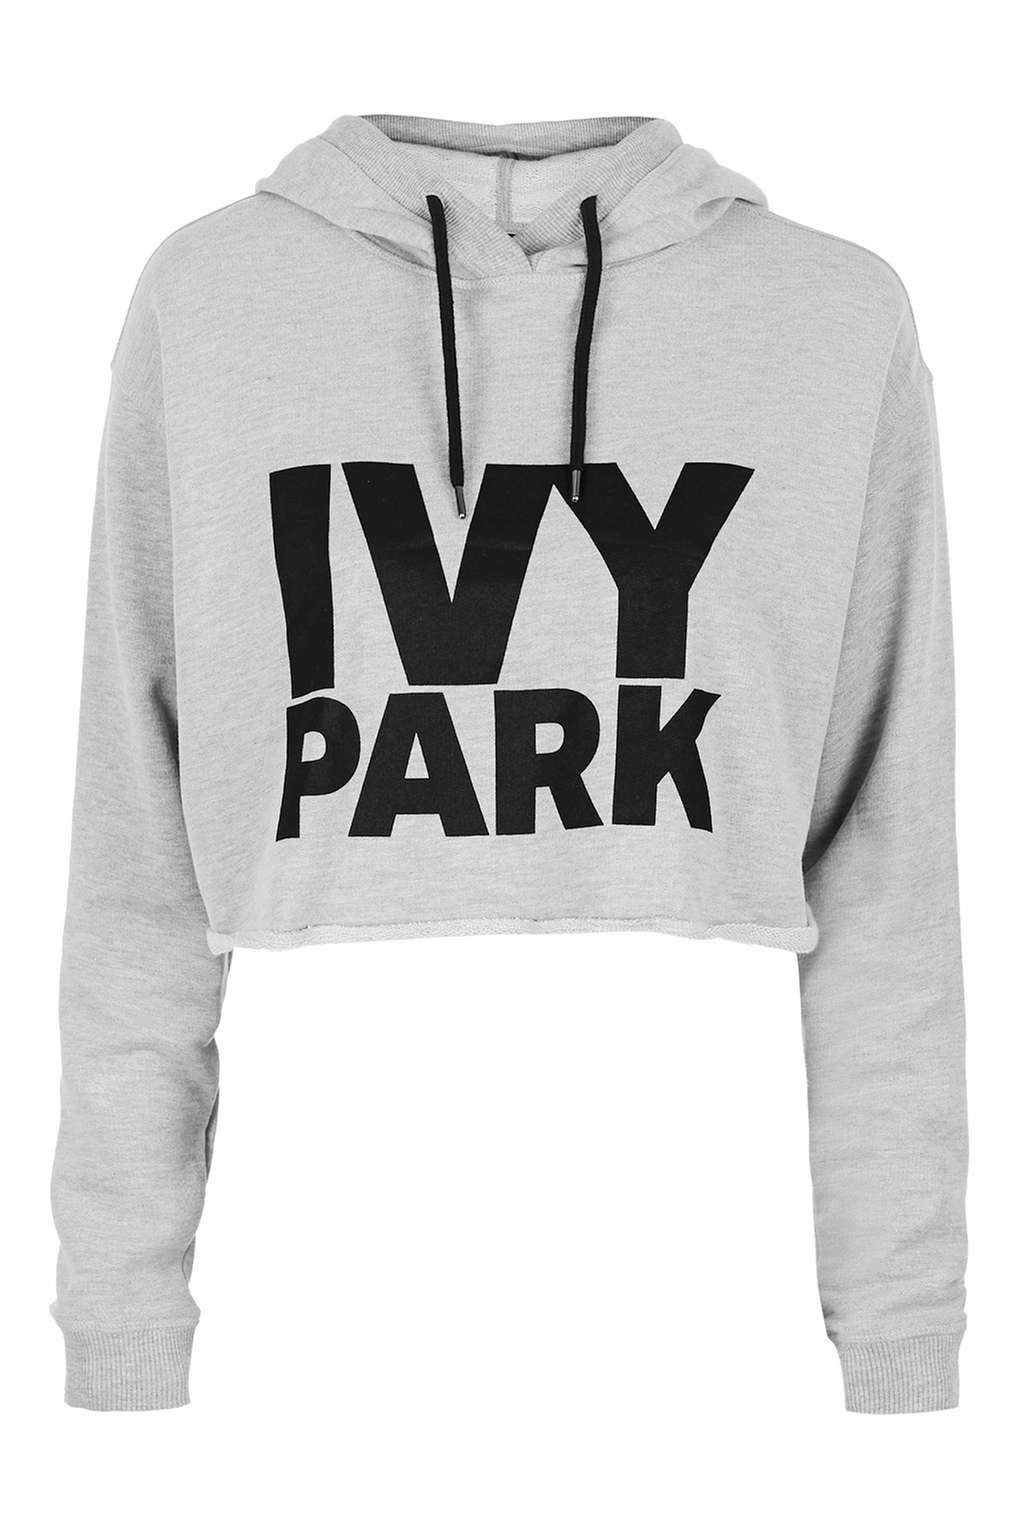 1057ba8135 Cropped Logo Detailed Hoodie by Ivy Park in 2019 | CLOSET | Ivy park ...